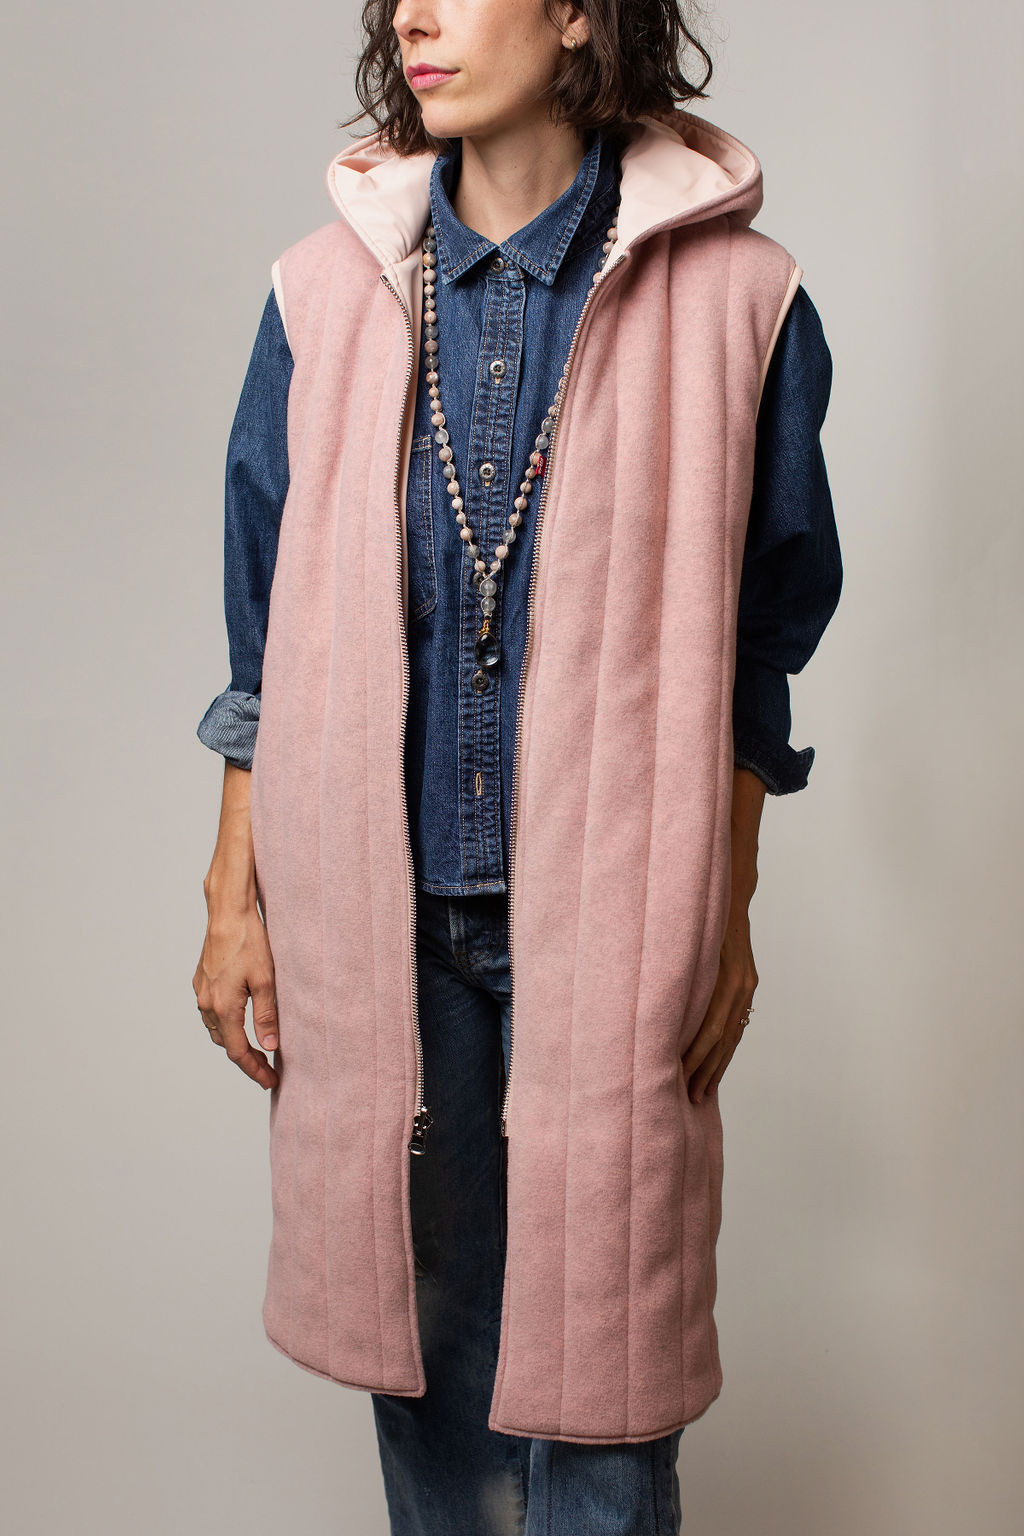 levis pink vest and necklace main